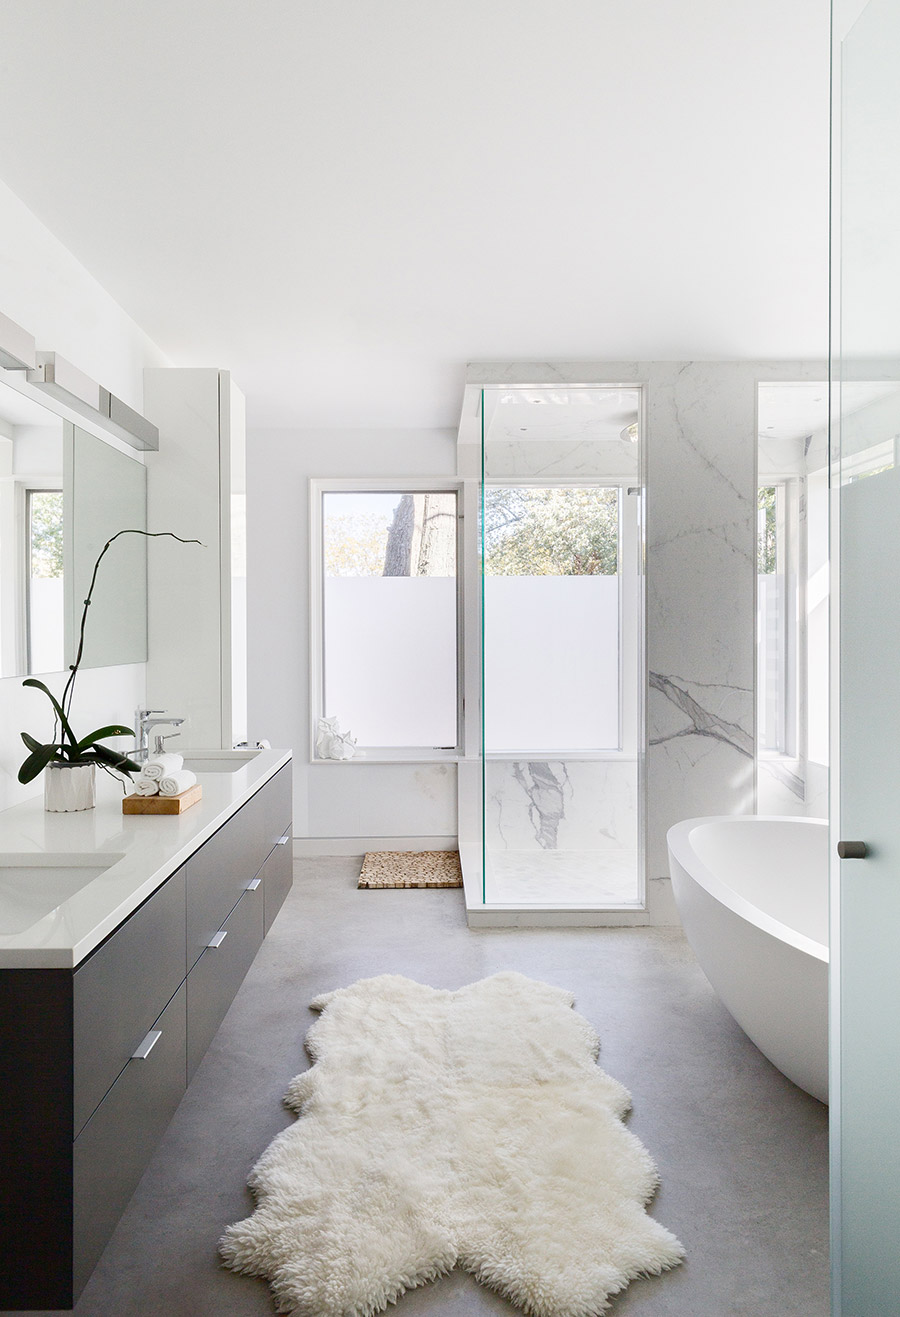 Bathroom with polished concrete floor and marble wall tiling, freestanding porcelain tub, and glass shower enclosure